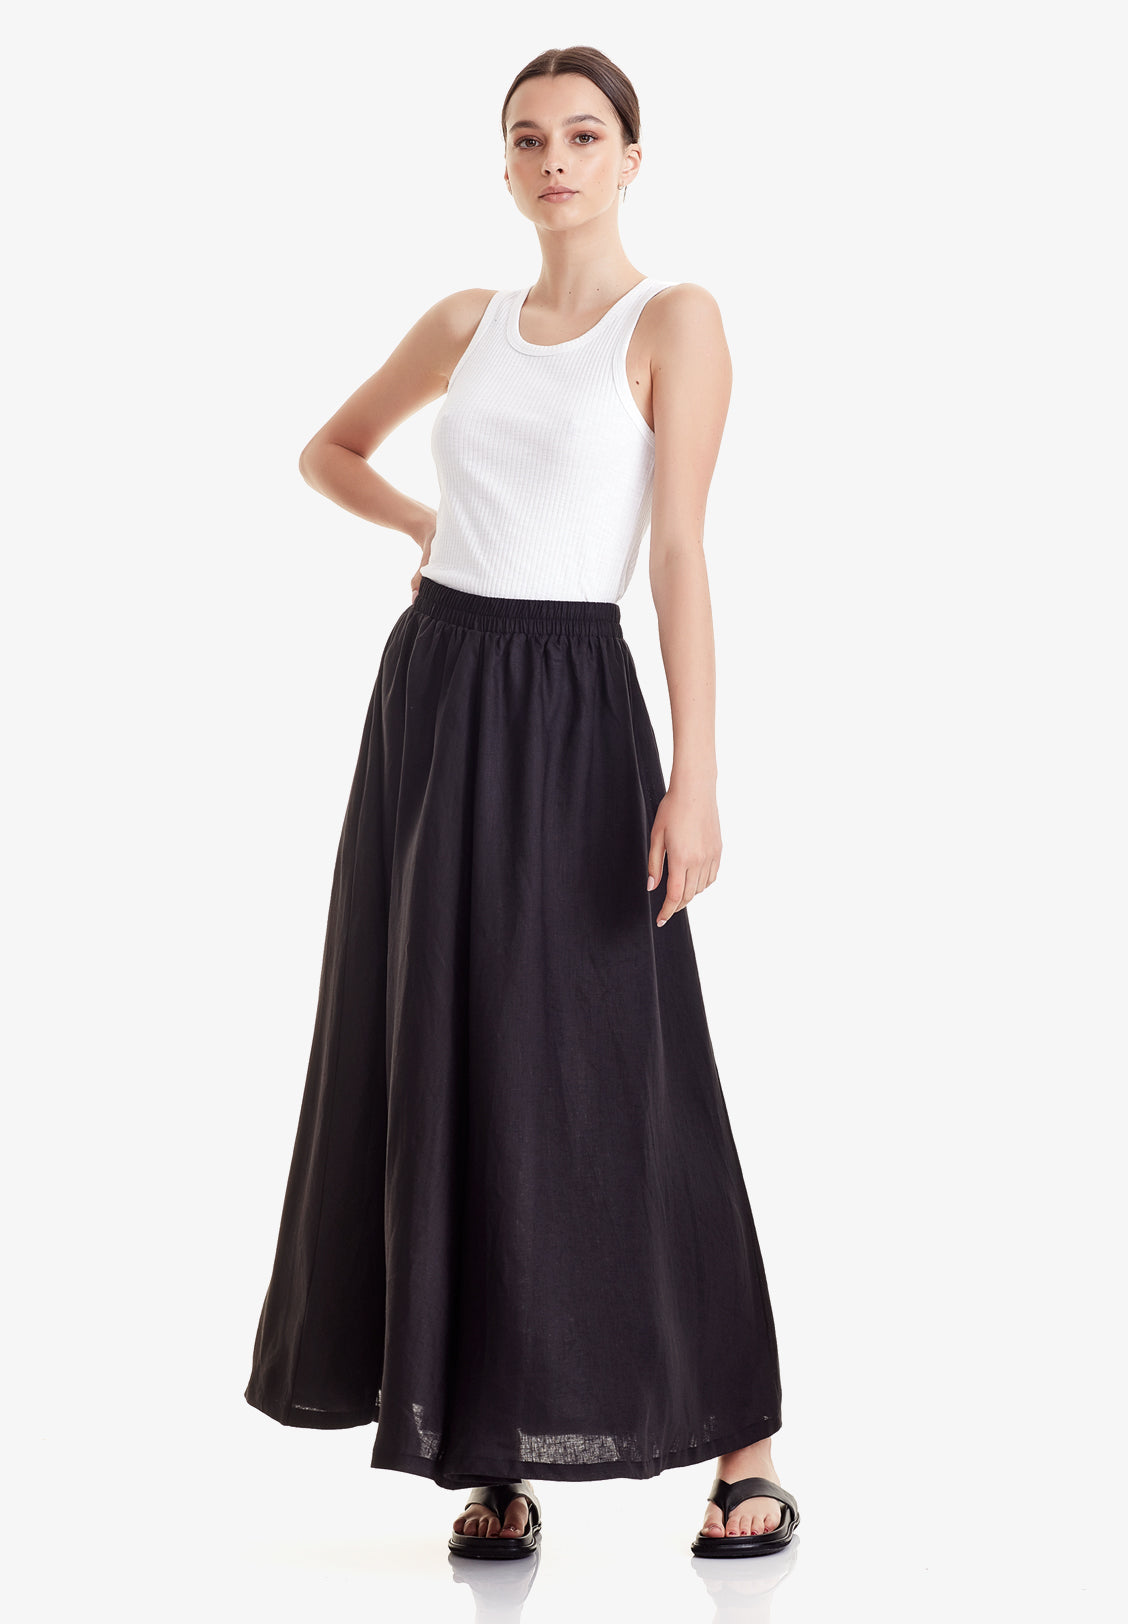 WOMEN'S MAXI SKIRT, BLACK